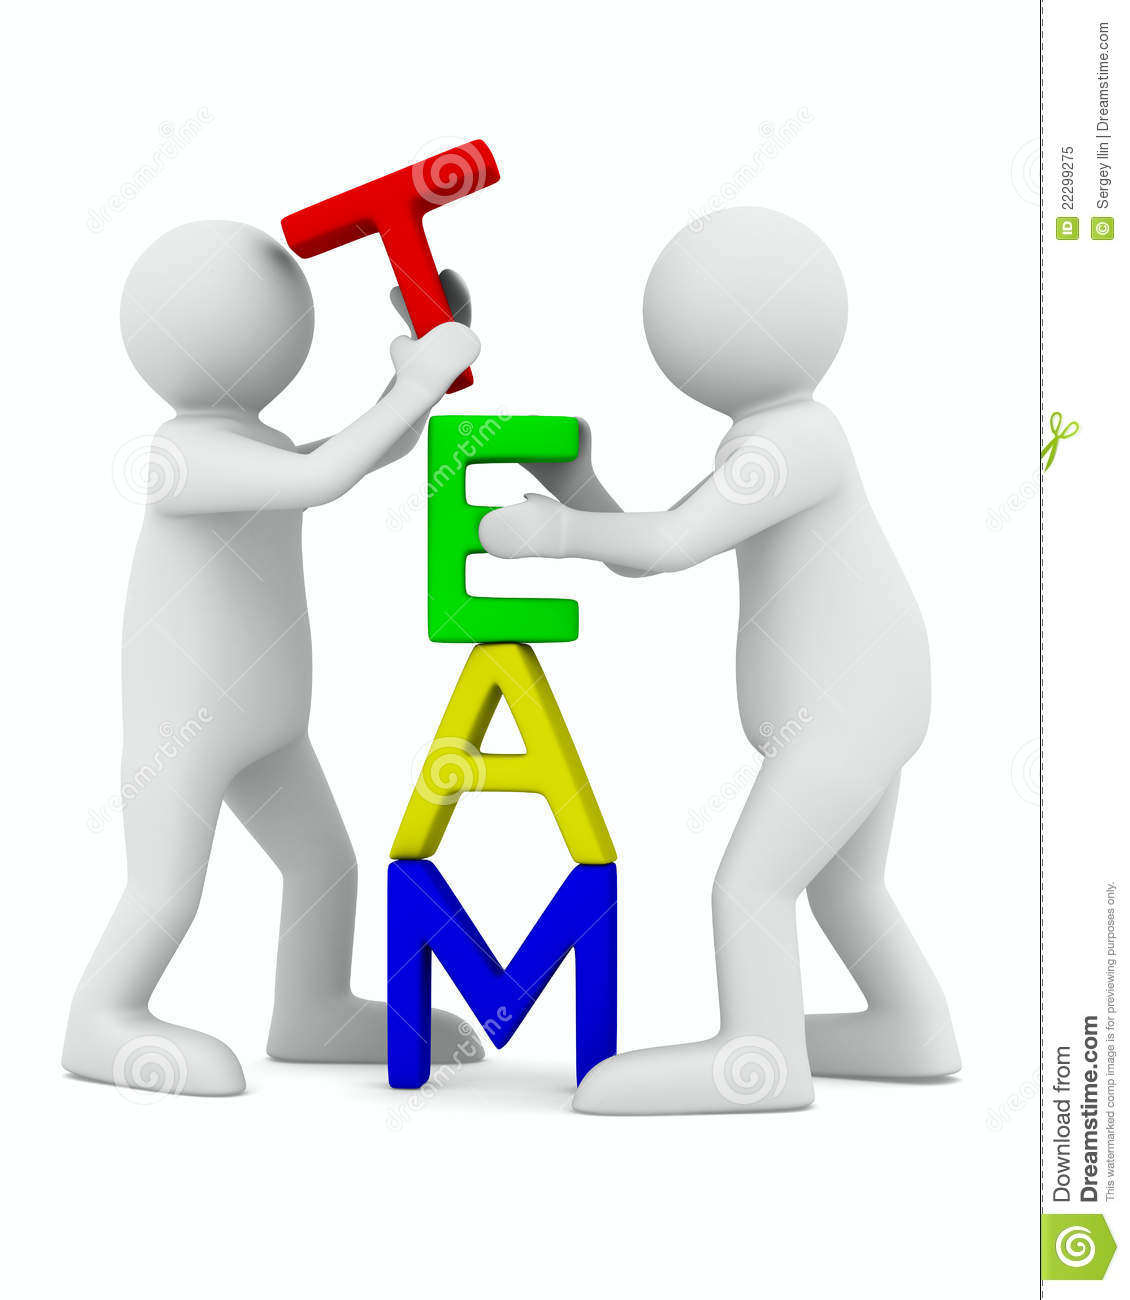 Conceptual Image Of Teamwork Royalty Free Stock Photo - Image ...